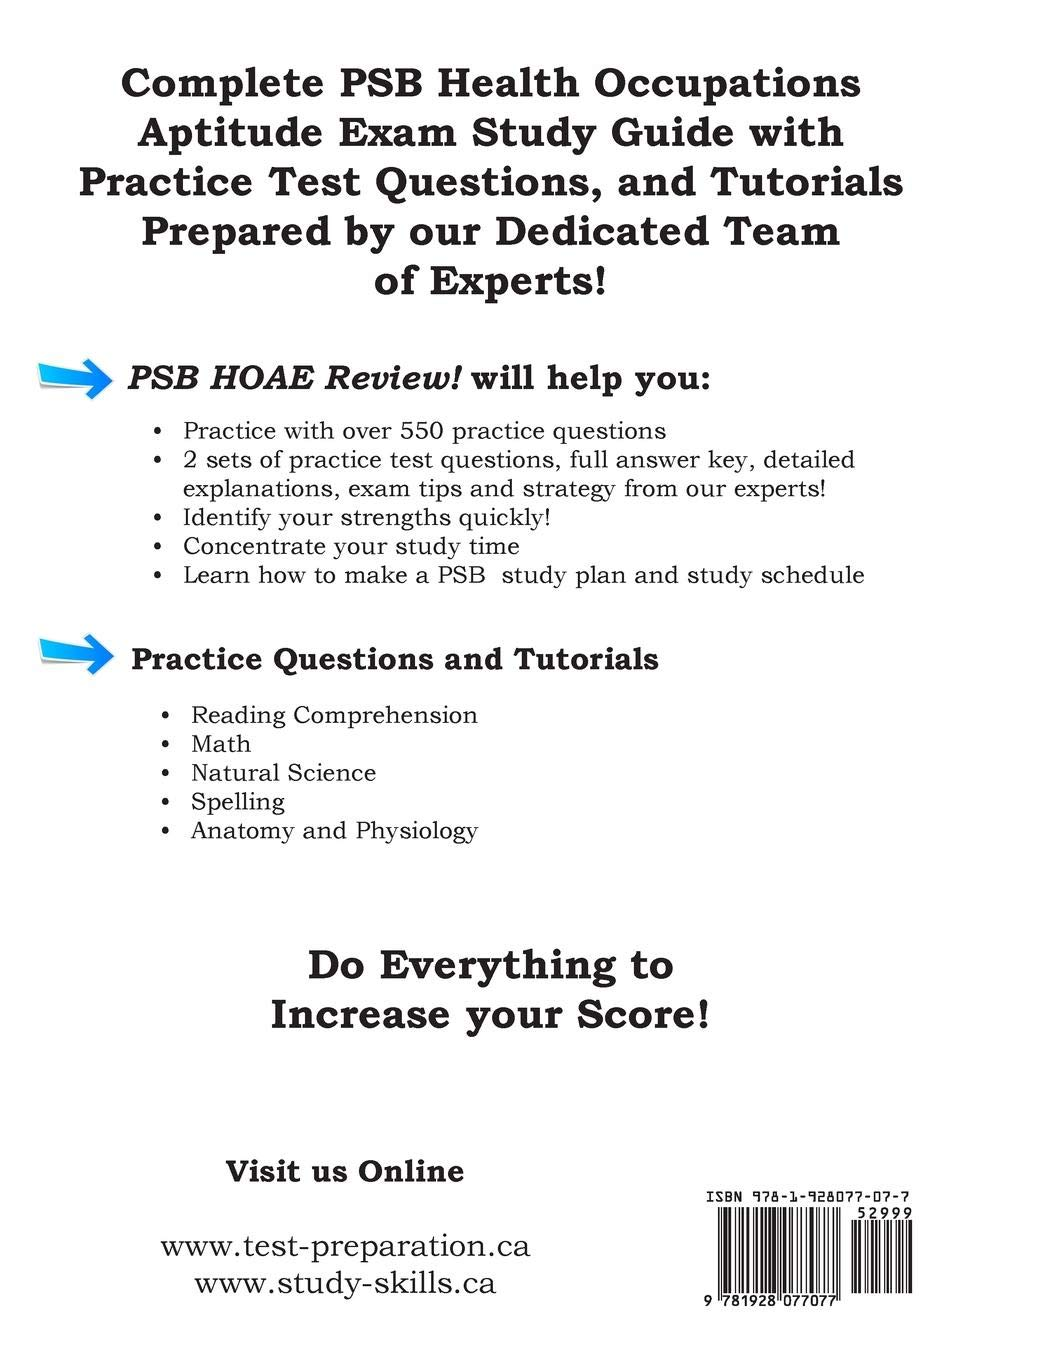 Buy PSB HOAE Review!: Complete Health Occupations Aptitude Test